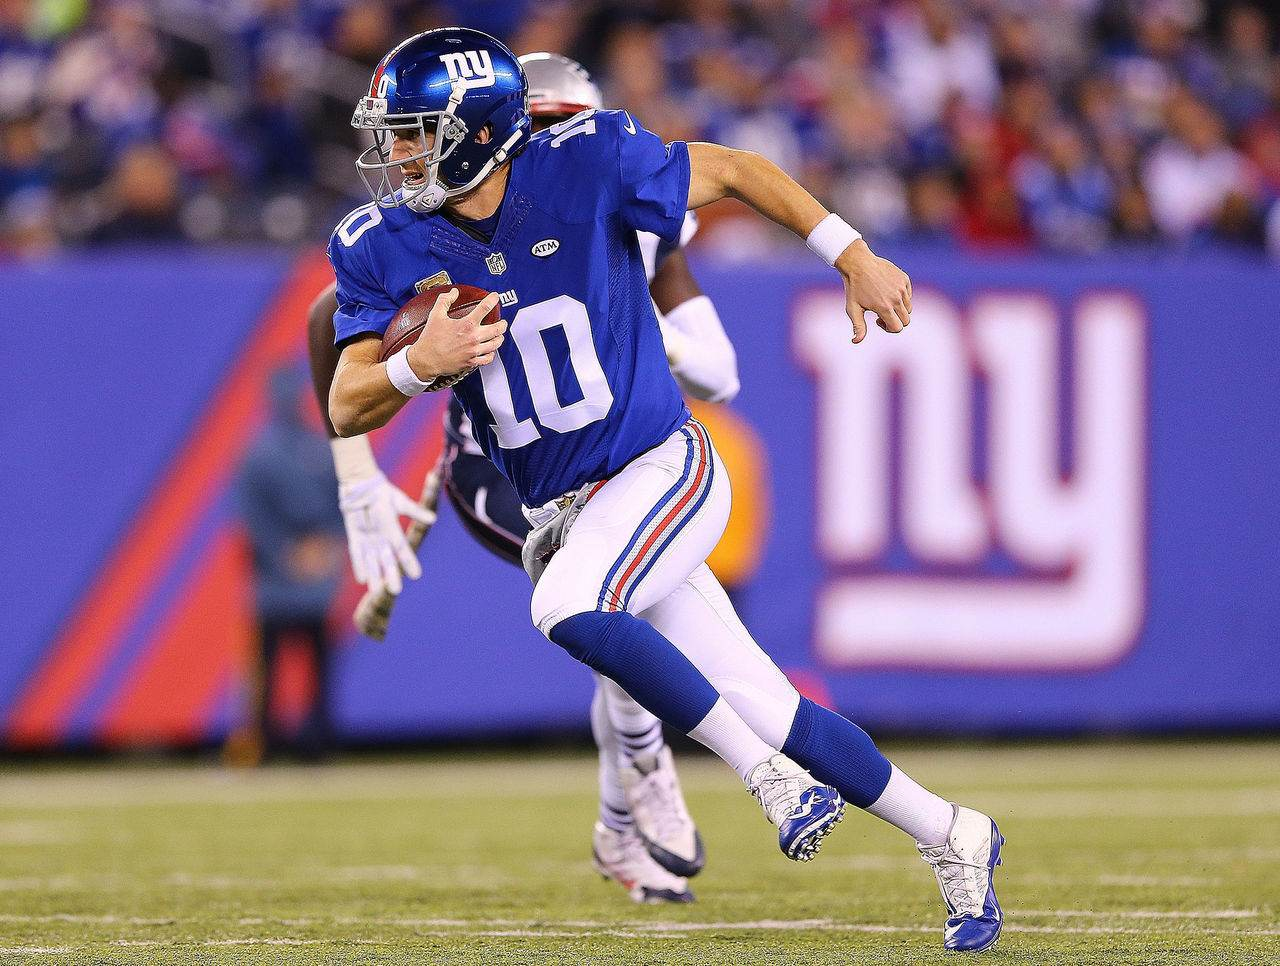 New York Giants To Wear White Pants In All 2016 Home Games 1